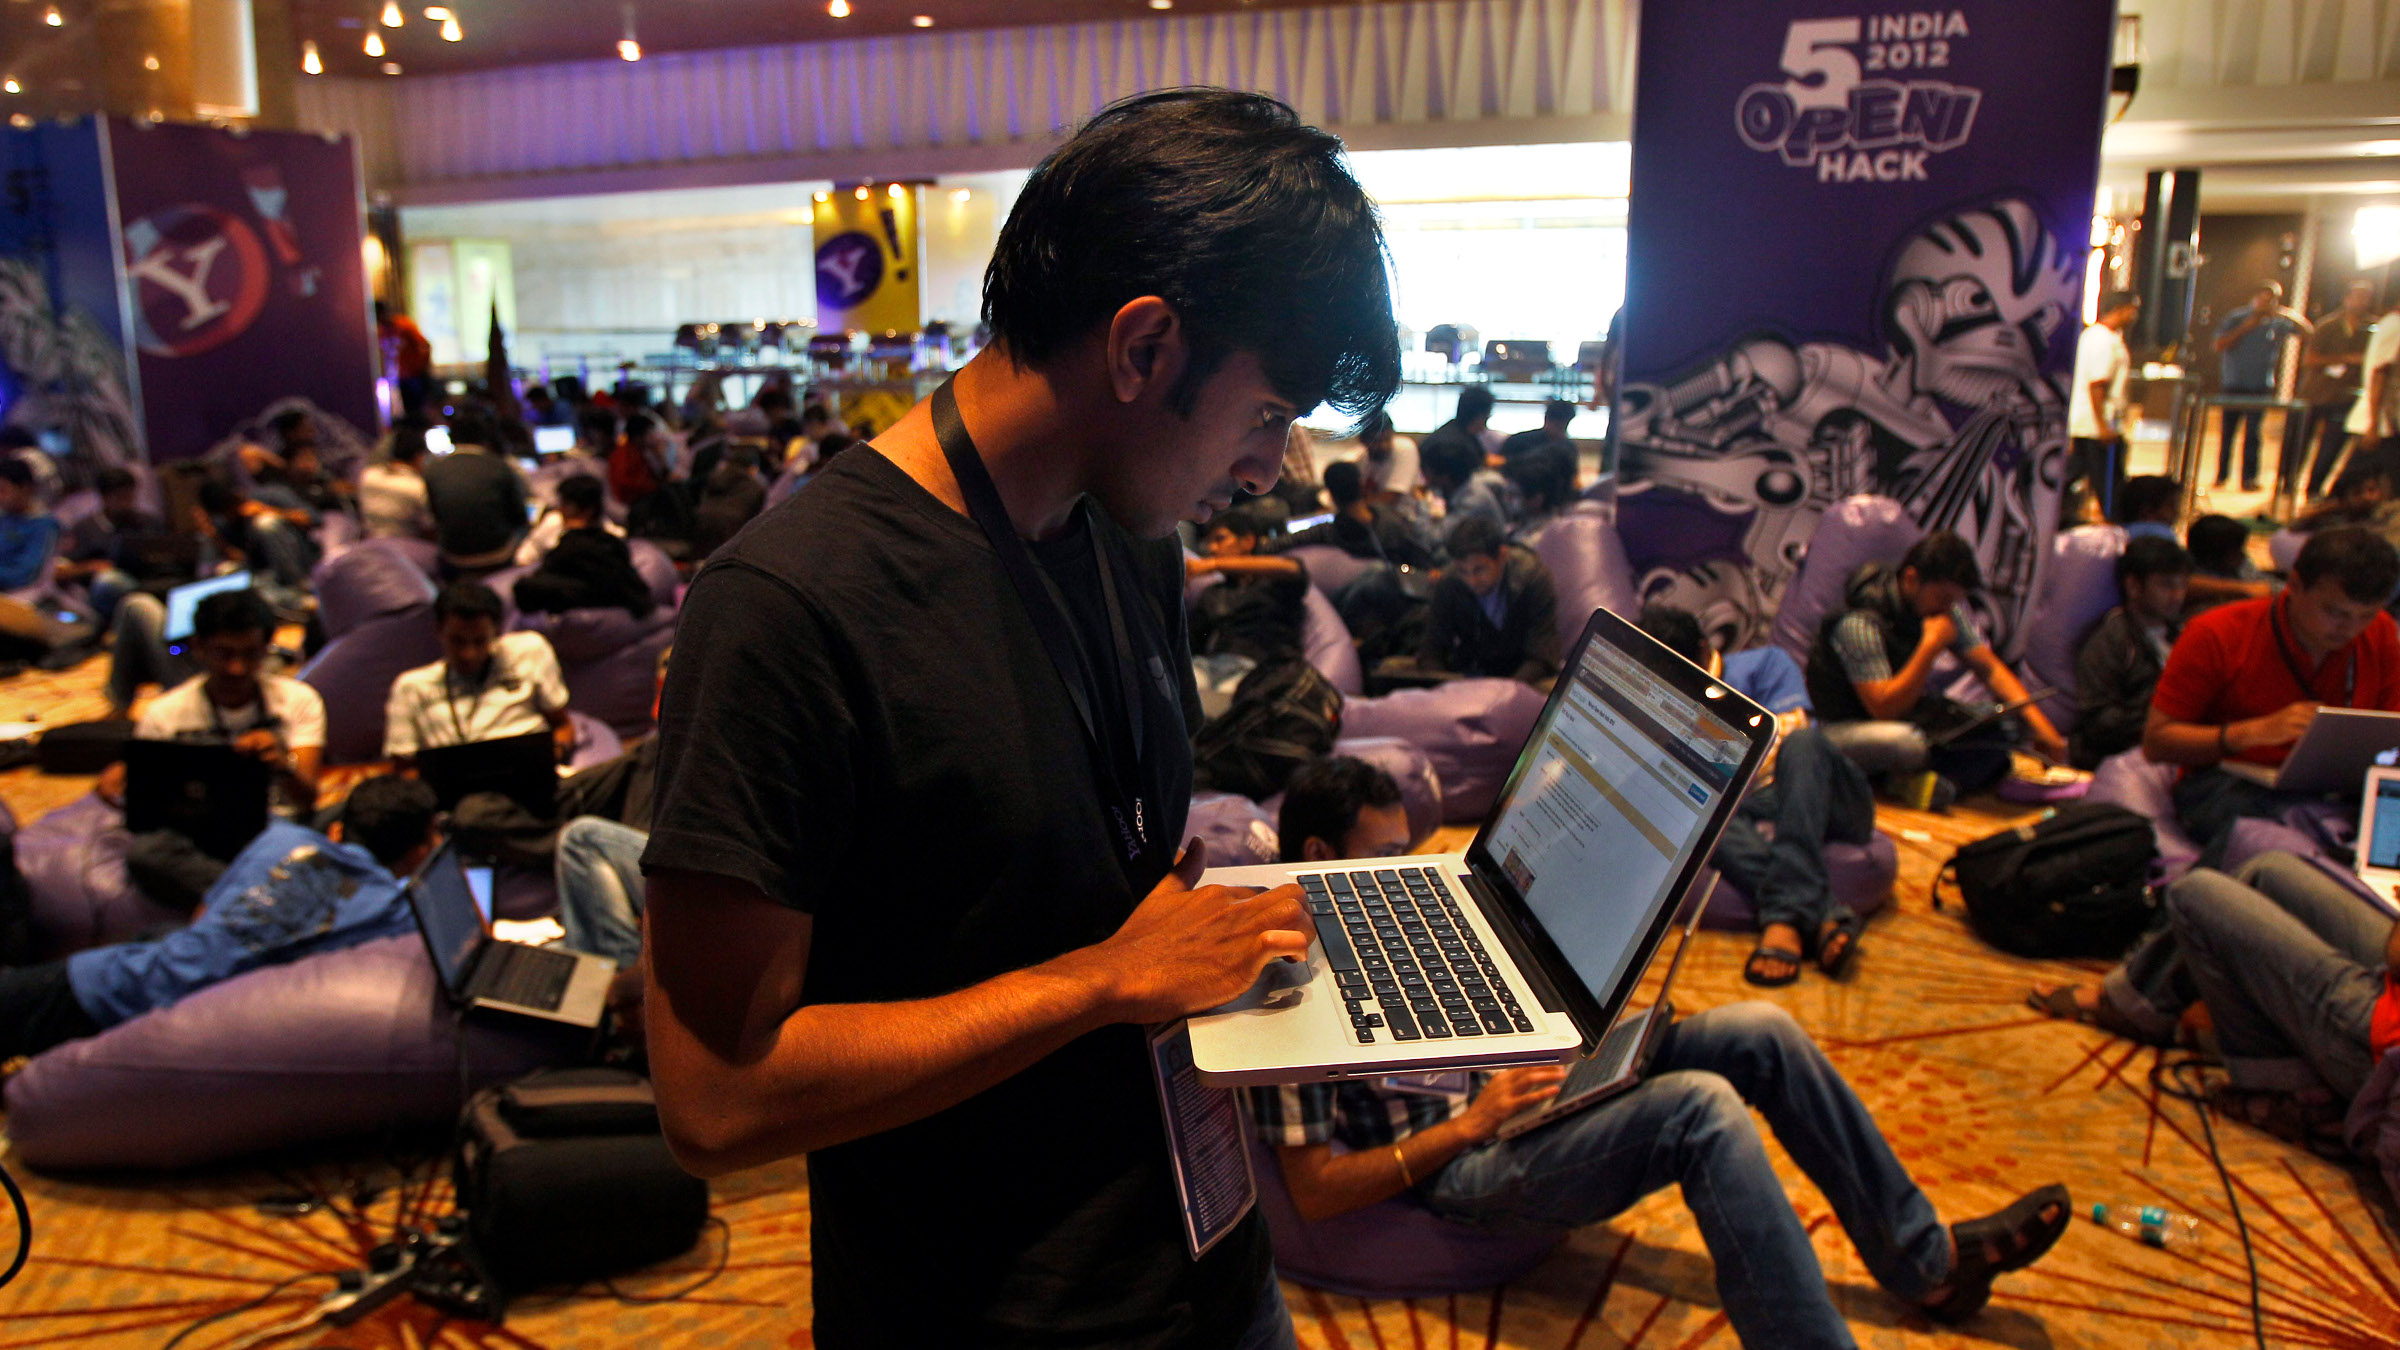 A participant works on his laptop during the fifth edition of Open Hack in India in Bangalore, India, Sunday, Aug. 12, 2012. About 700 software engineers and developers took part in the 24-hour open hacking competition organized by Yahoo, which gives developers a chance to work together and build applications and product ideas using different technologies to develop something that can potentially solve a real-world problem that impact internet users.